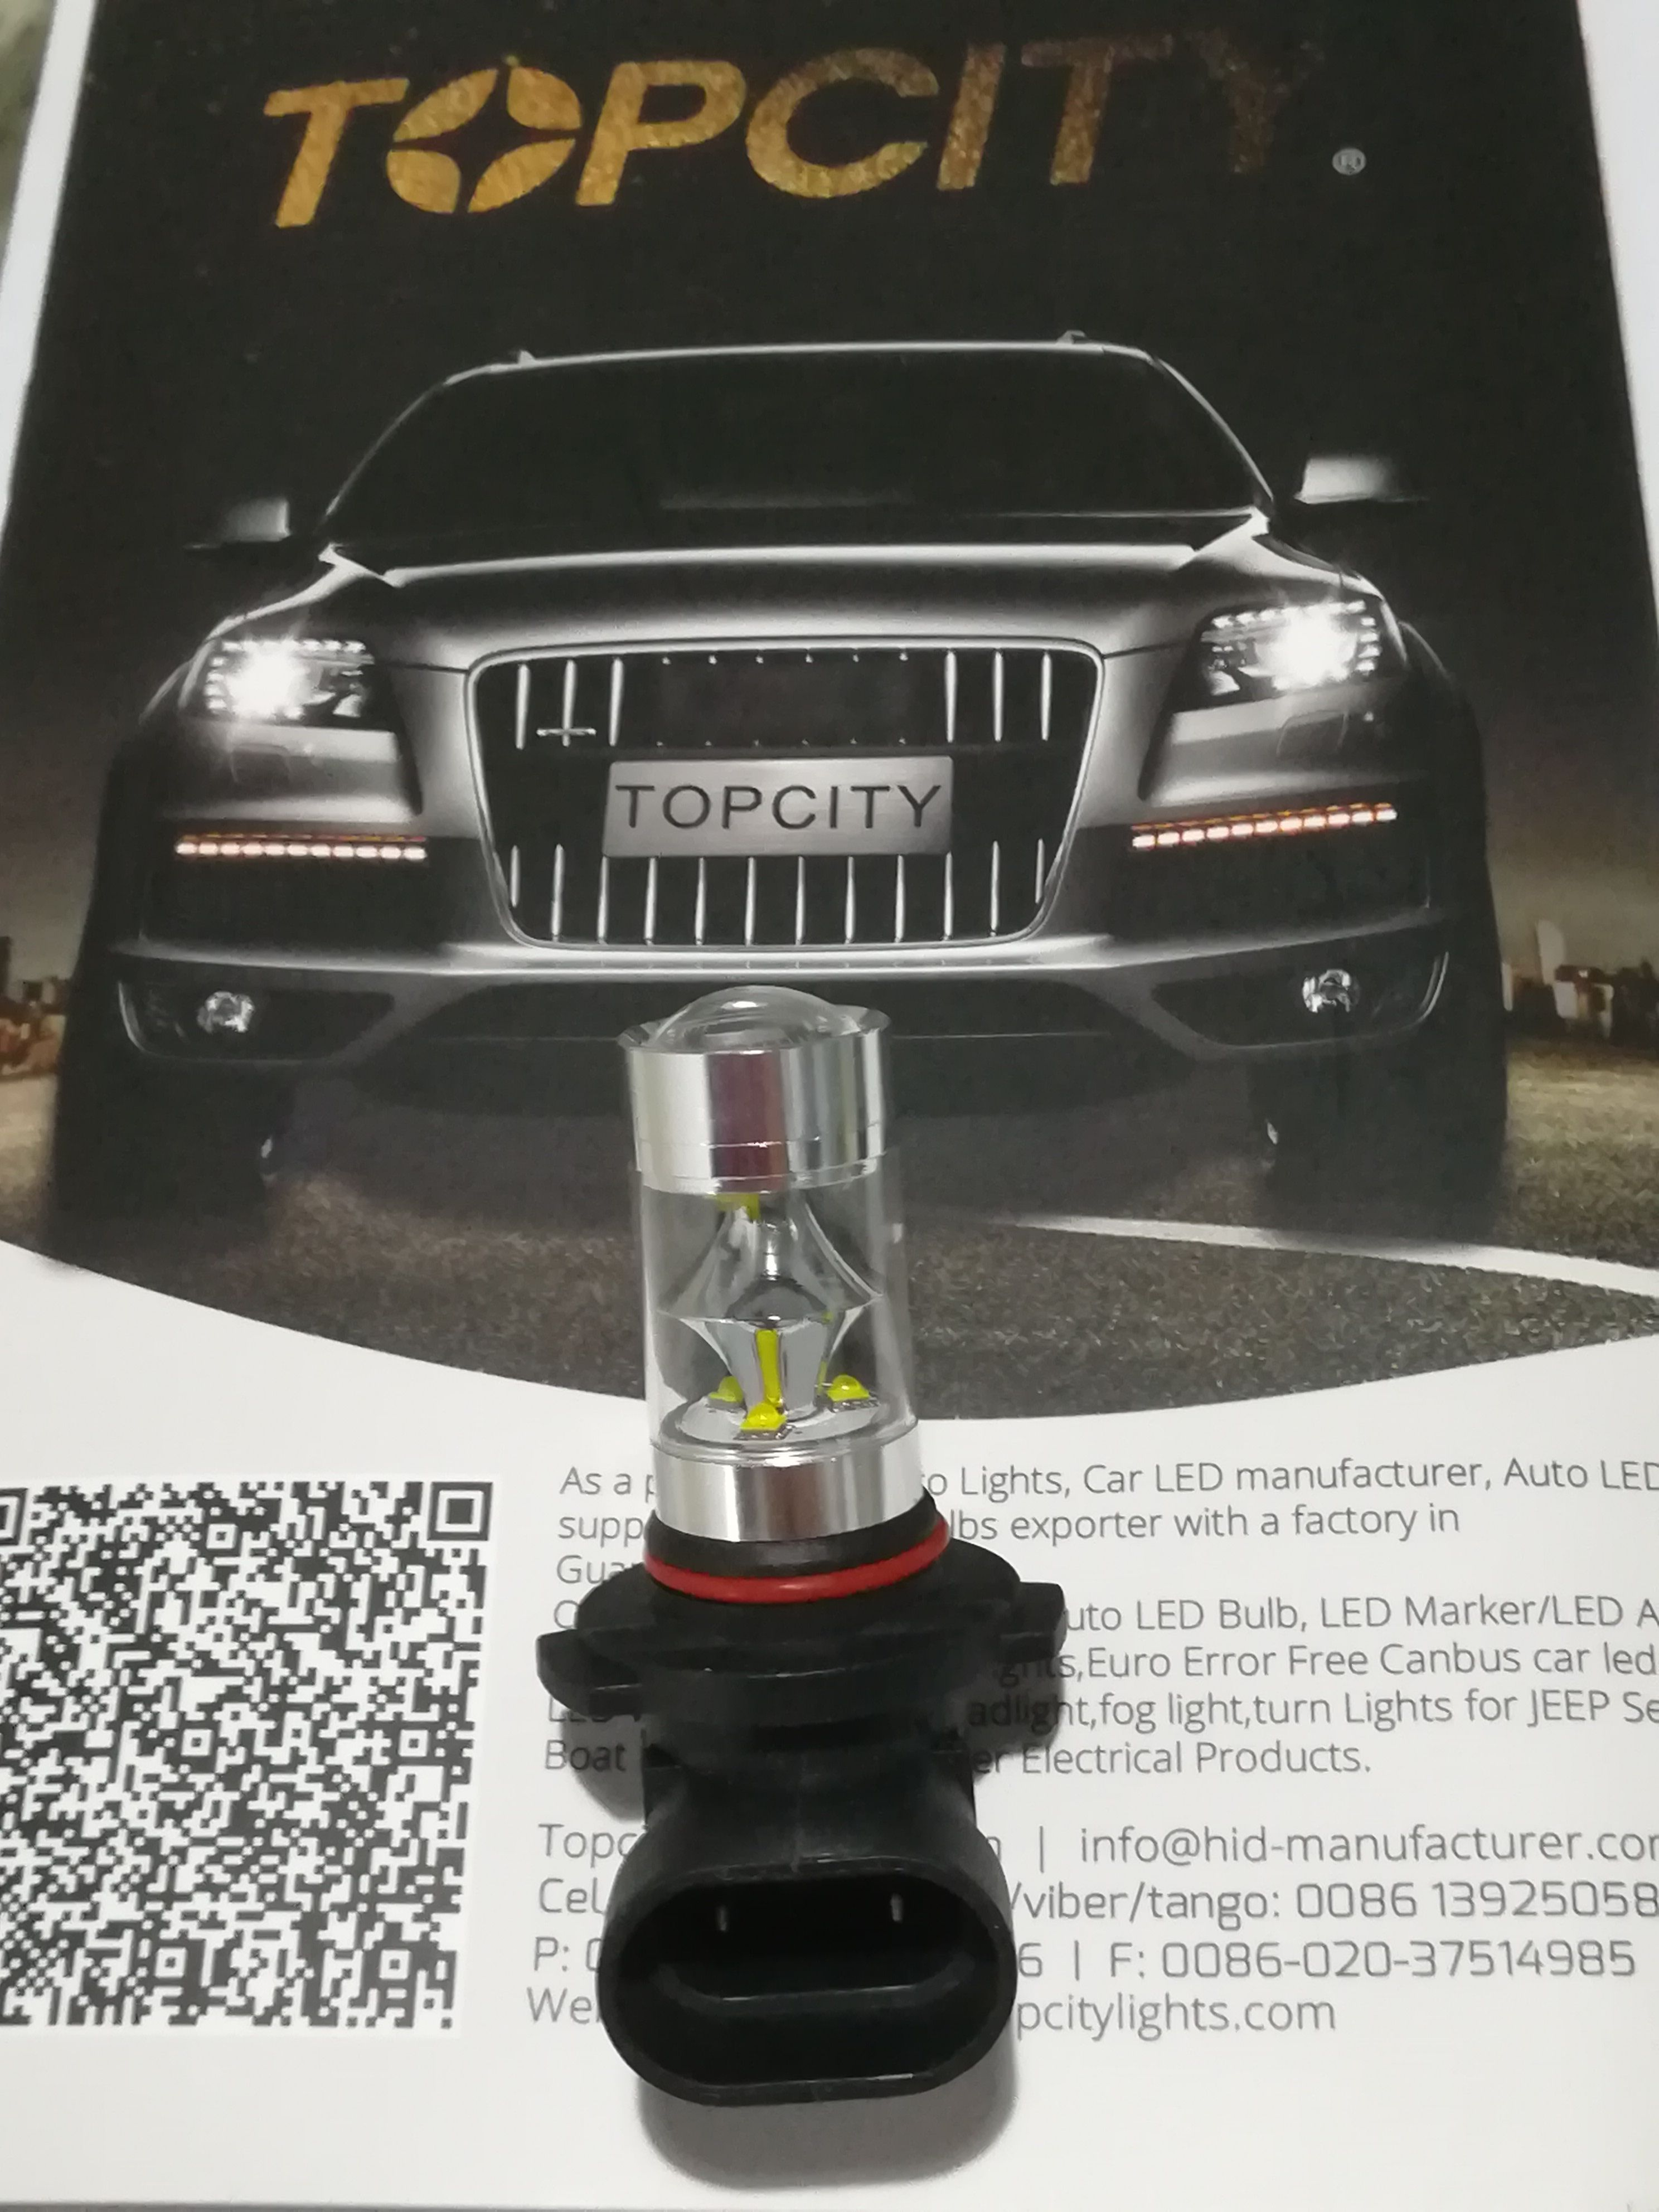 Topcity Fog Light For Europe Cars And Japan Cars Led Bulb For Auto